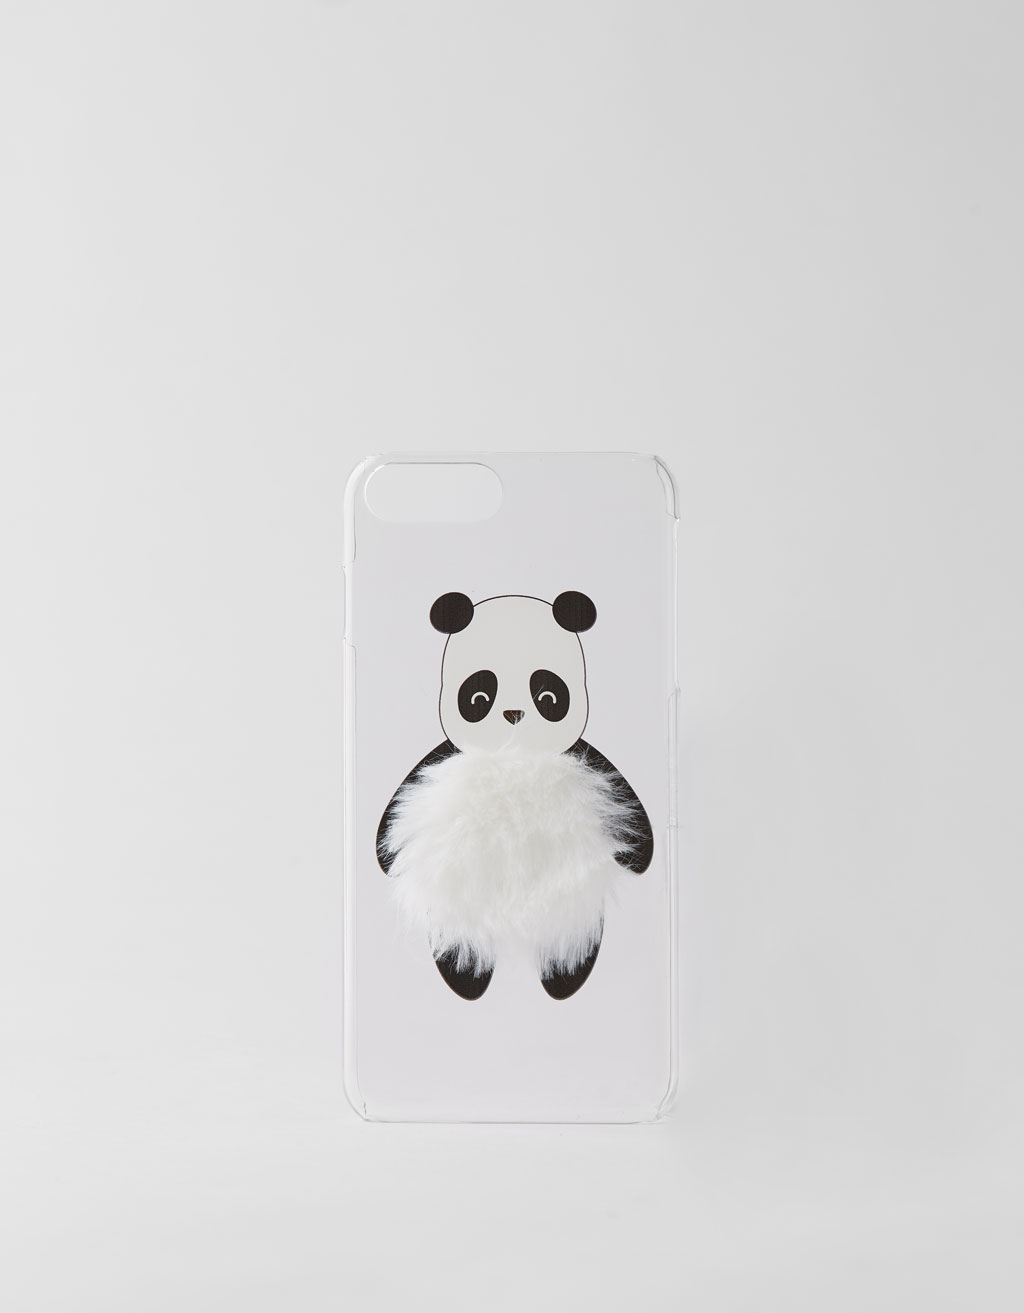 Capa Panda iPhone 6 plus / 7 plus / 8 plus